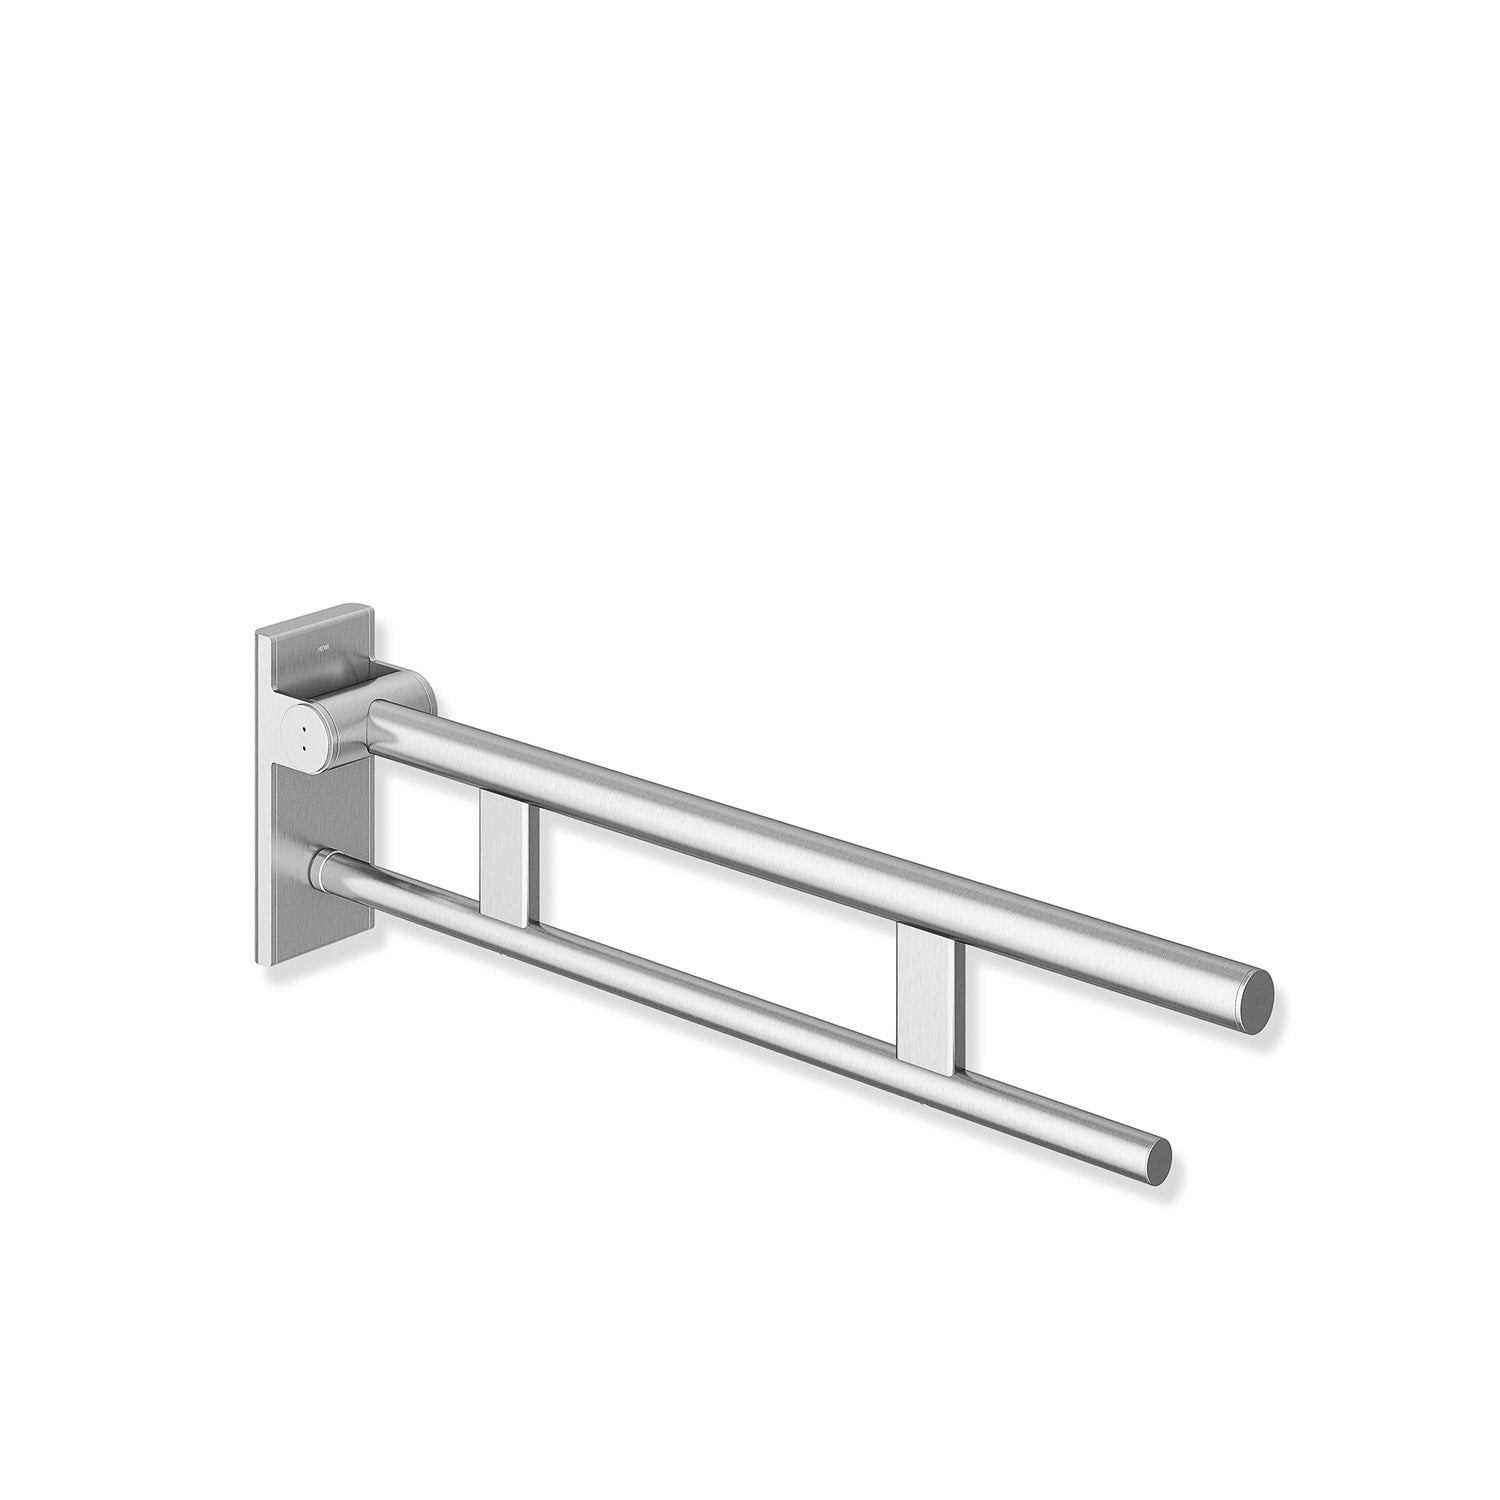 850mm Freestyle Hinged Grab Rail with a satin steel finish on a white background